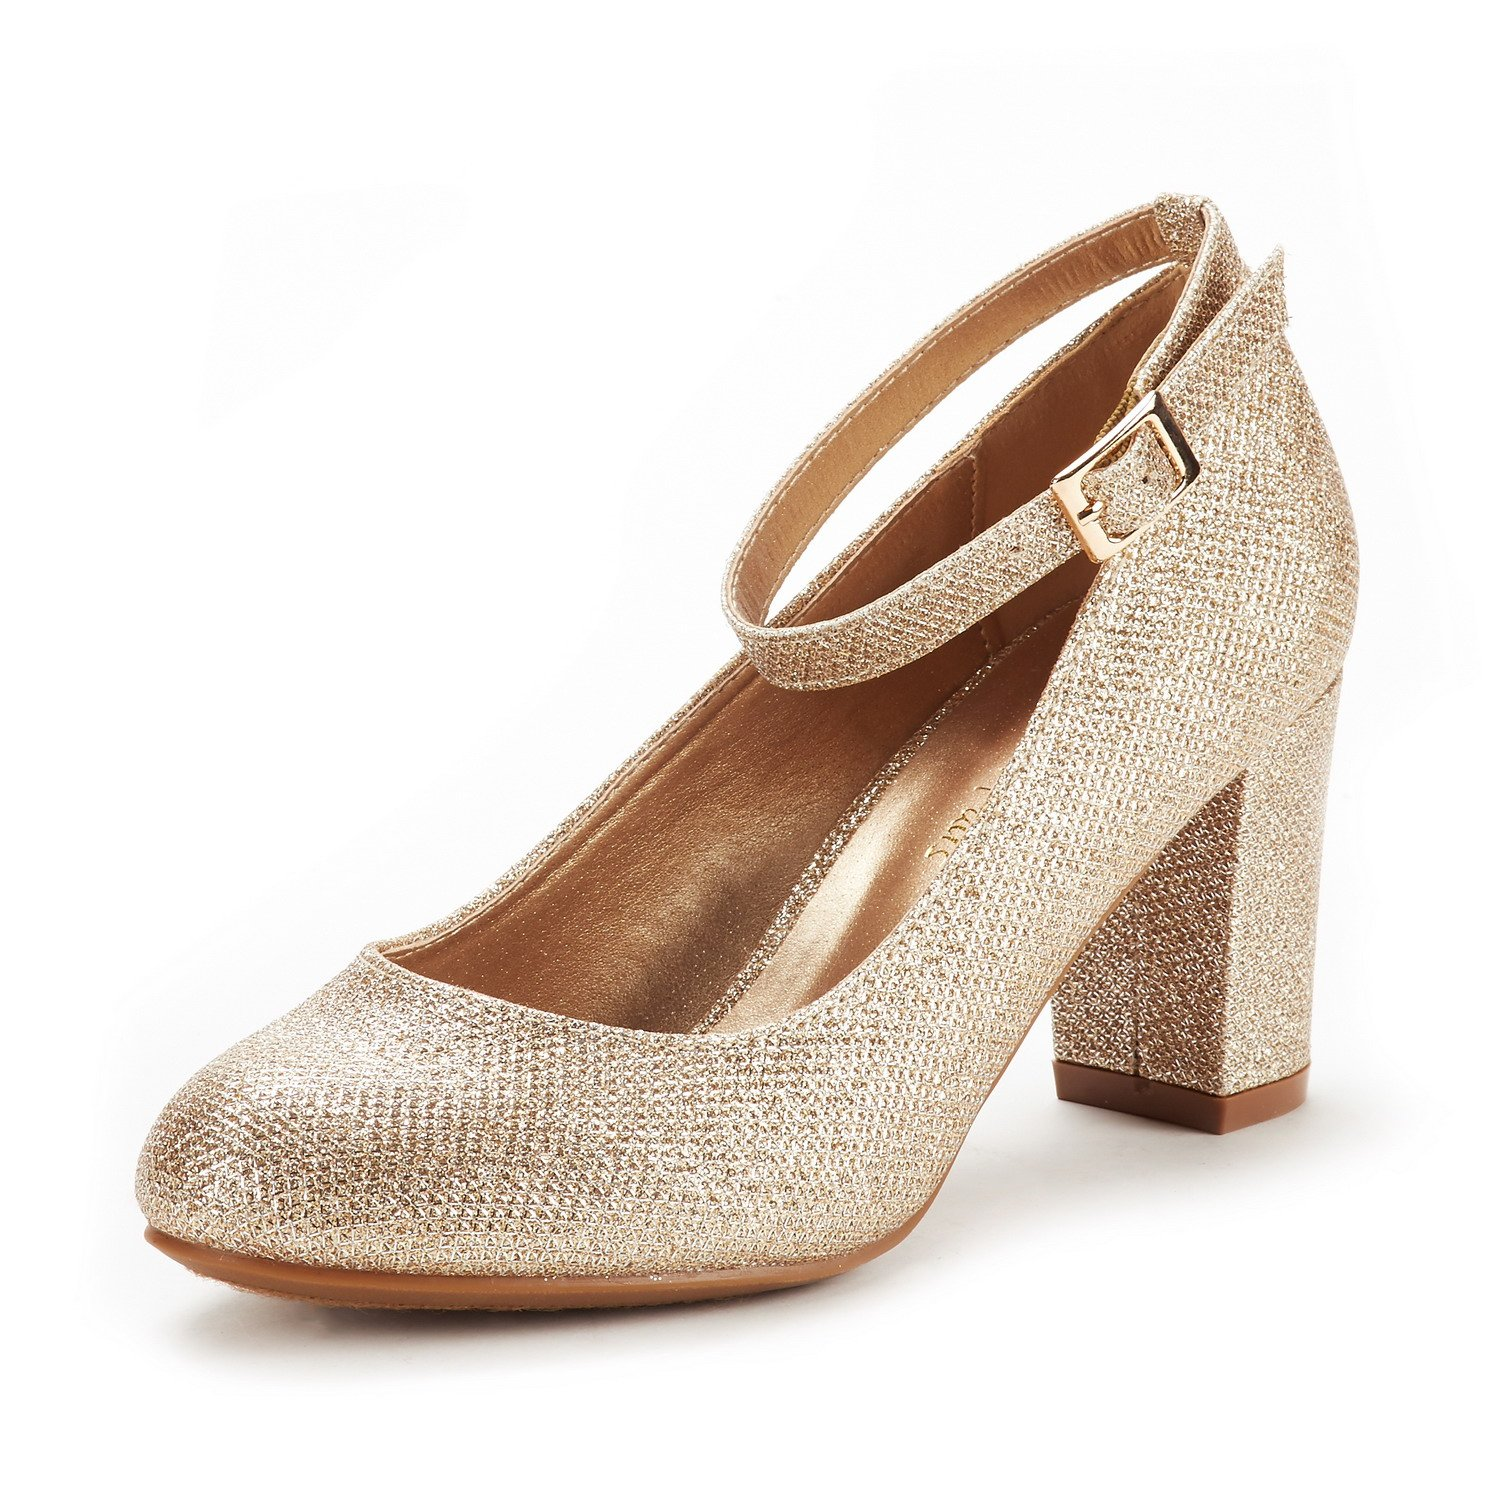 DREAM PAIRS Women's Demilee Gold Glitter High Chunky Heel Pump Shoes Size 9.5 B(M) US